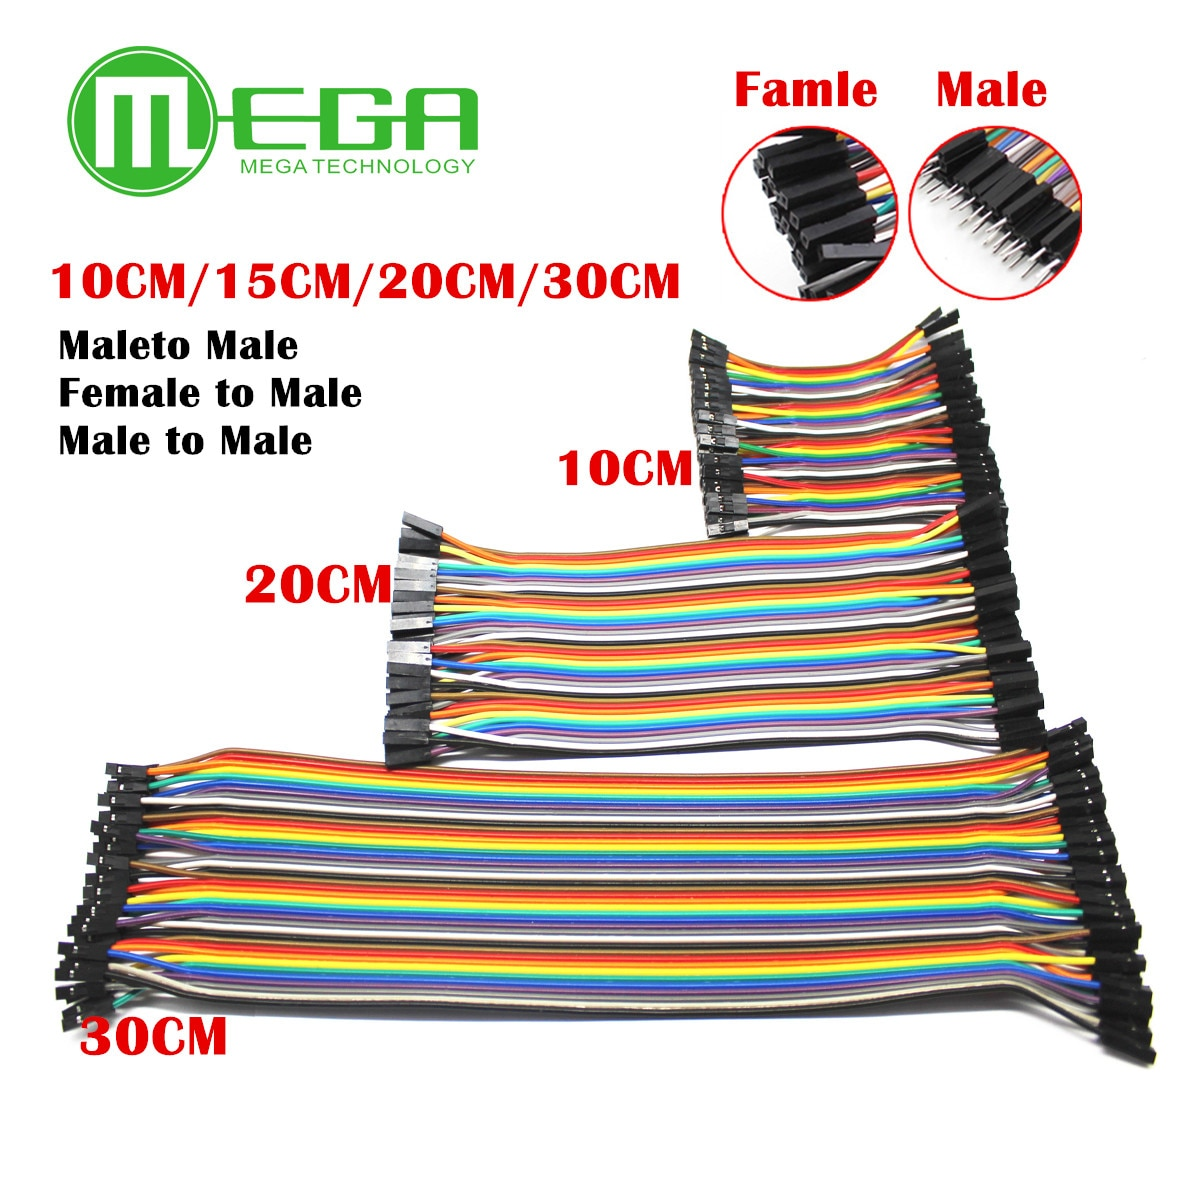 10ROW=400pcs Dupont Line 40Pin Male to Male + Male to Female and Female to Female Jumper Wire Dupont Cable for Arduino DIY KIT